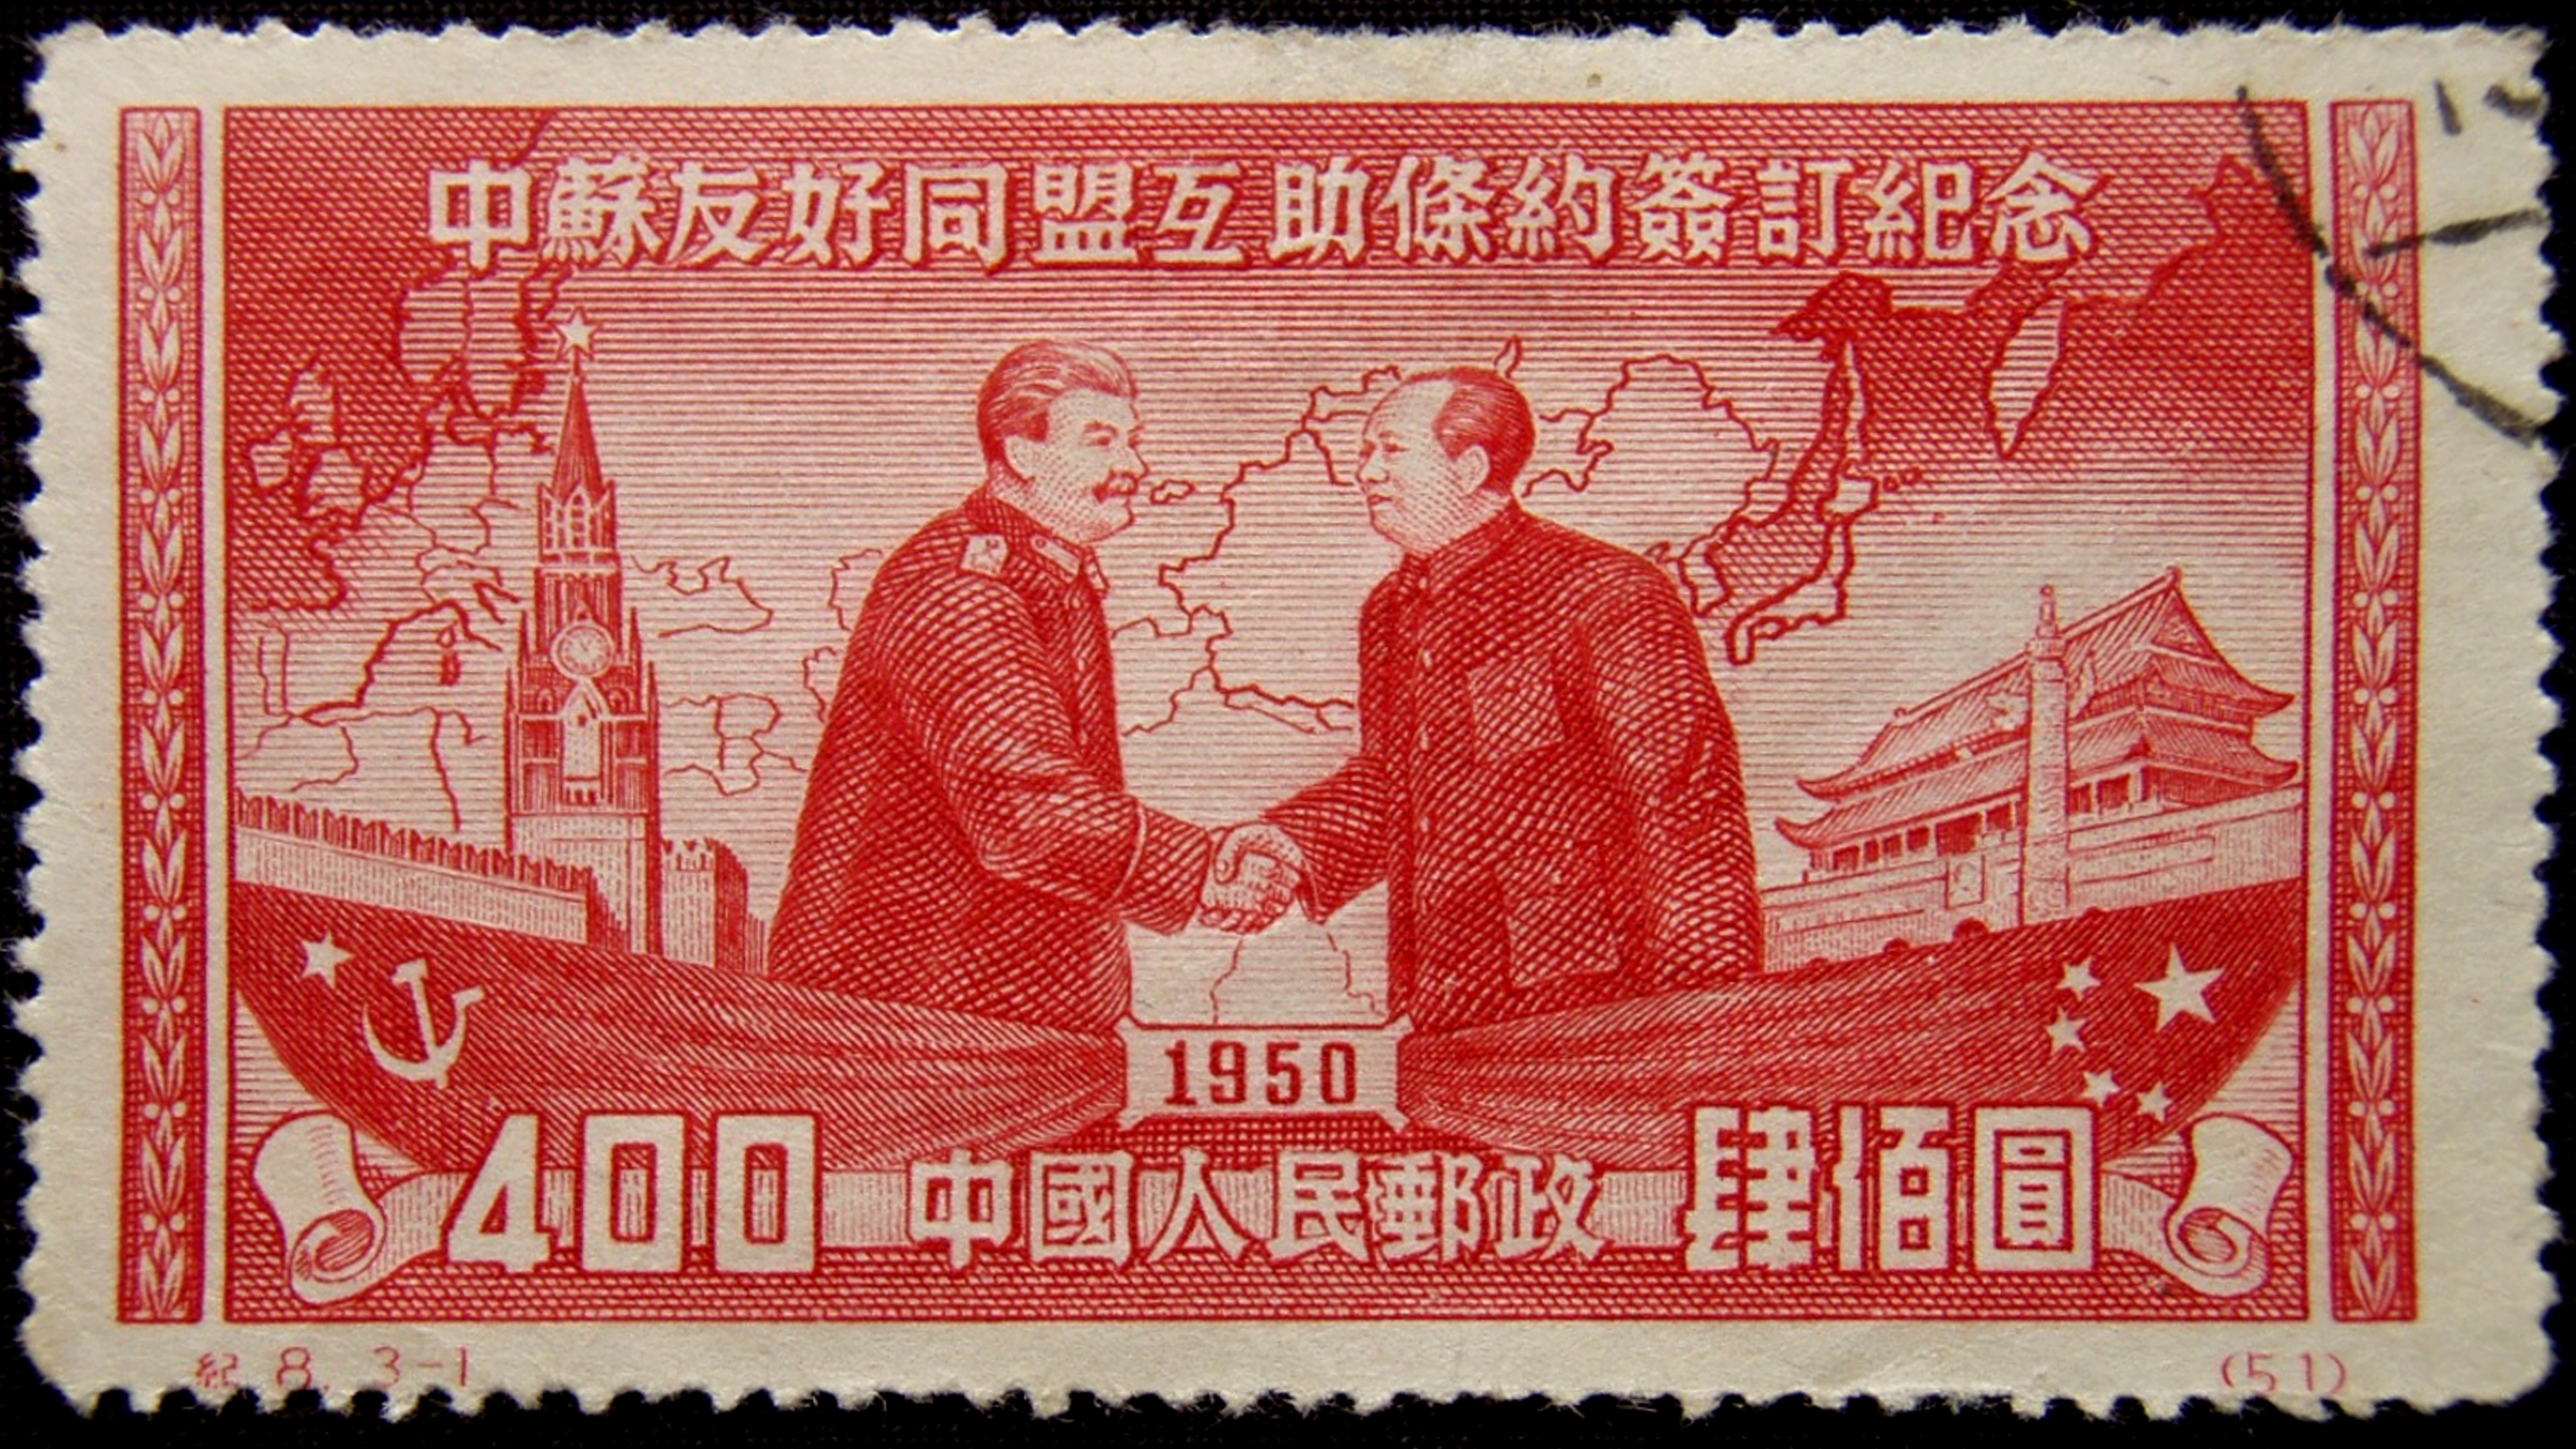 Chinese stamp in 1950